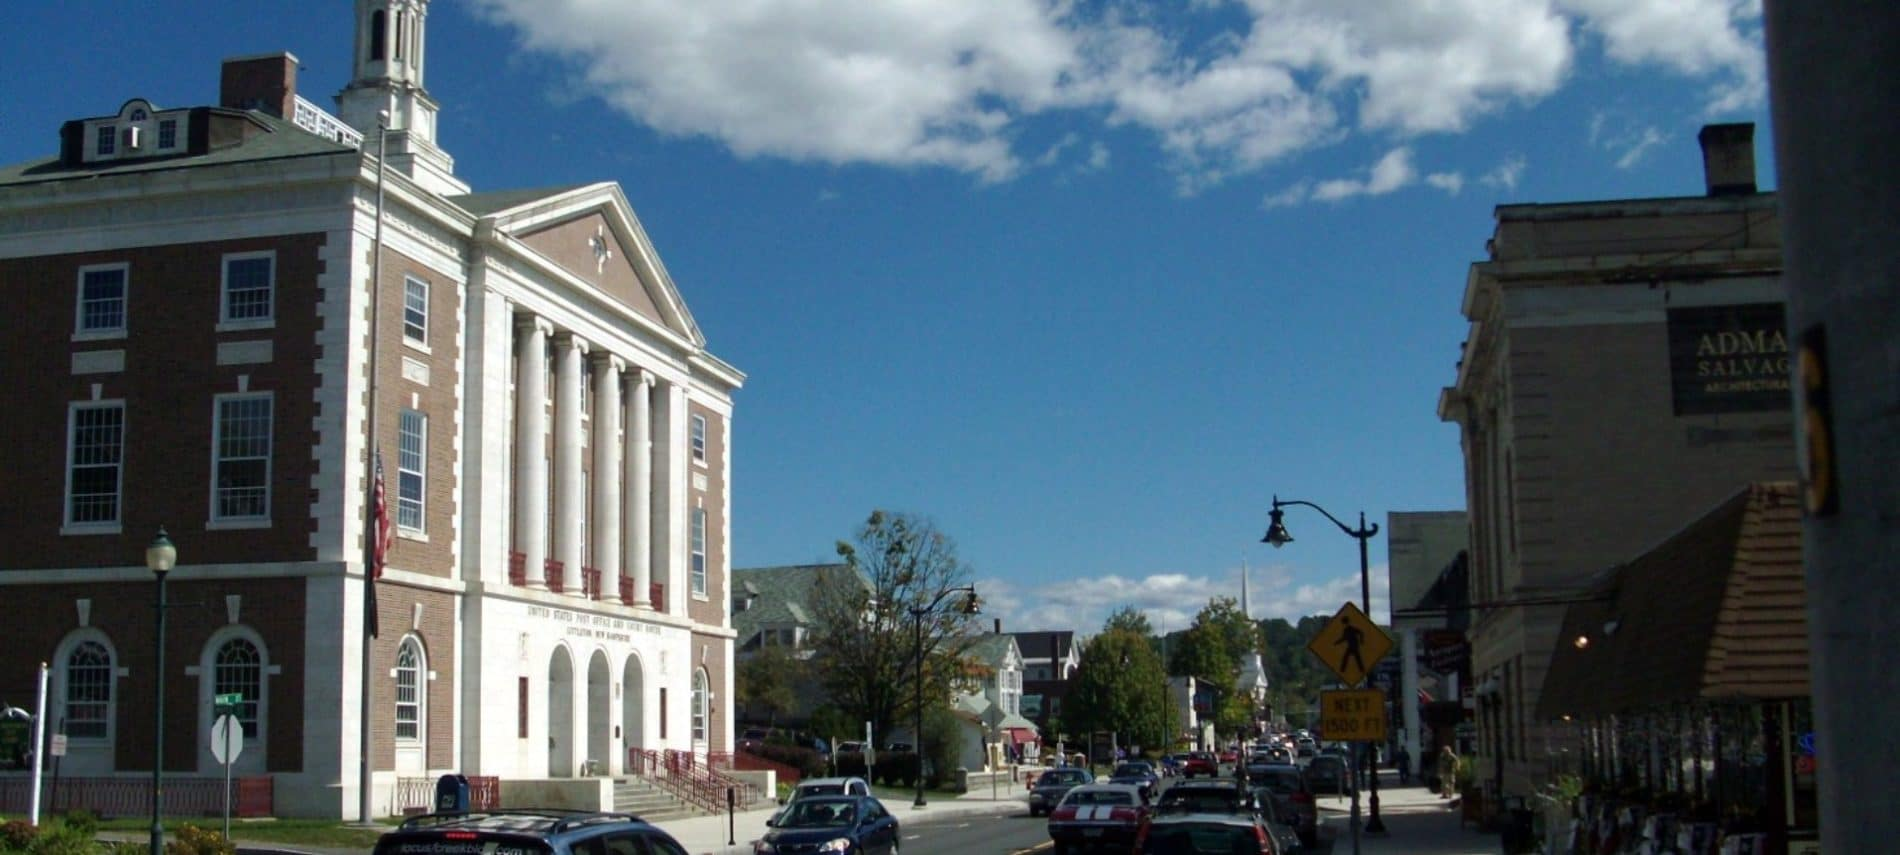 Post office building in downtown Littleton, NH